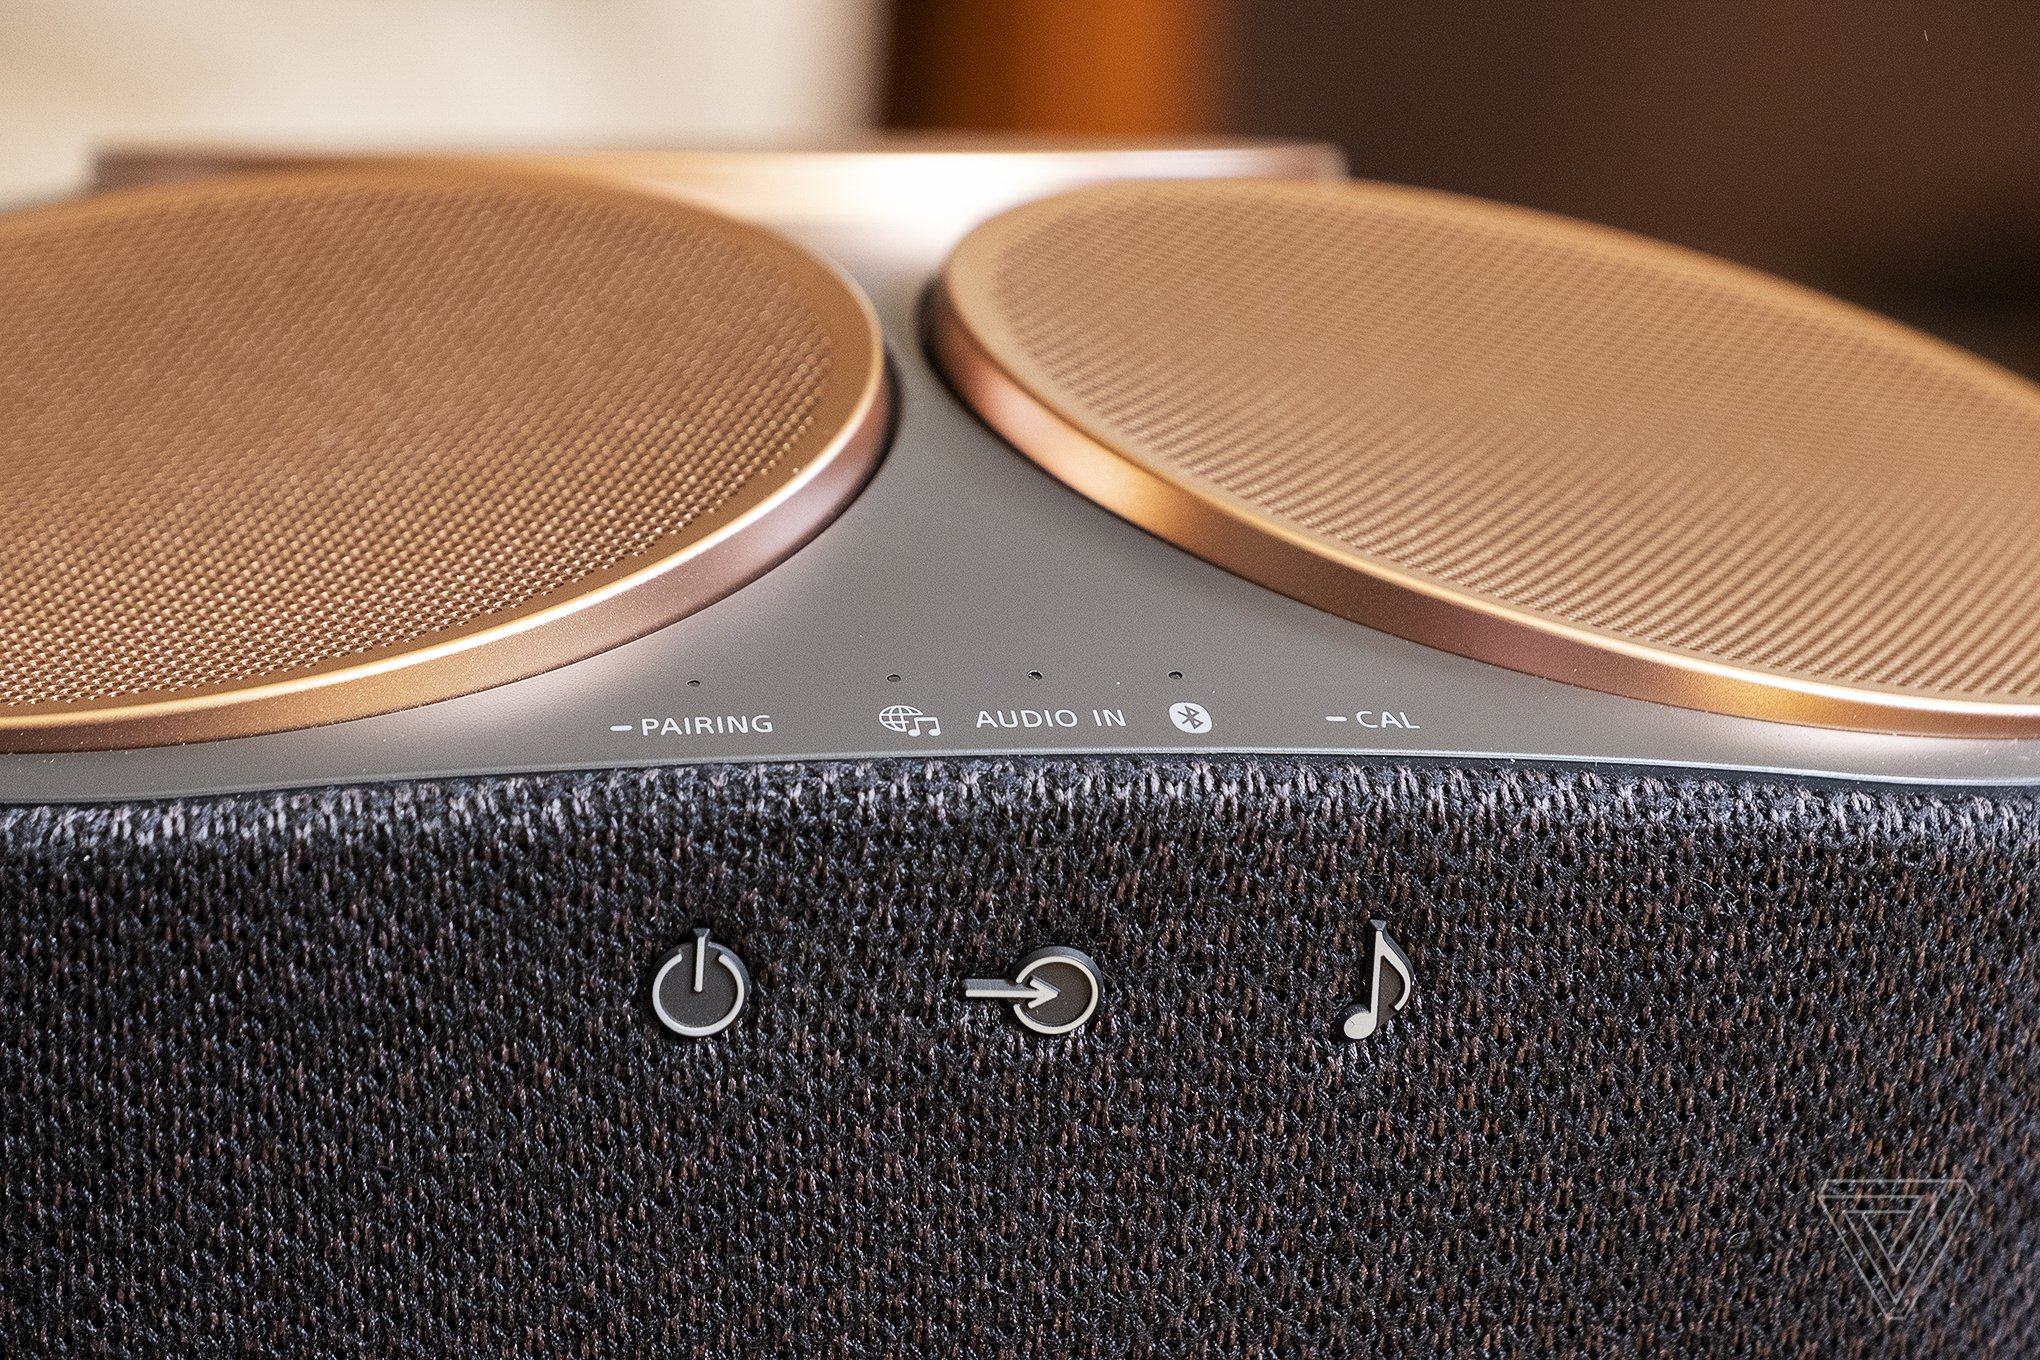 The speaker supports music over Wi-Fi, Bluetooth, or aux input.